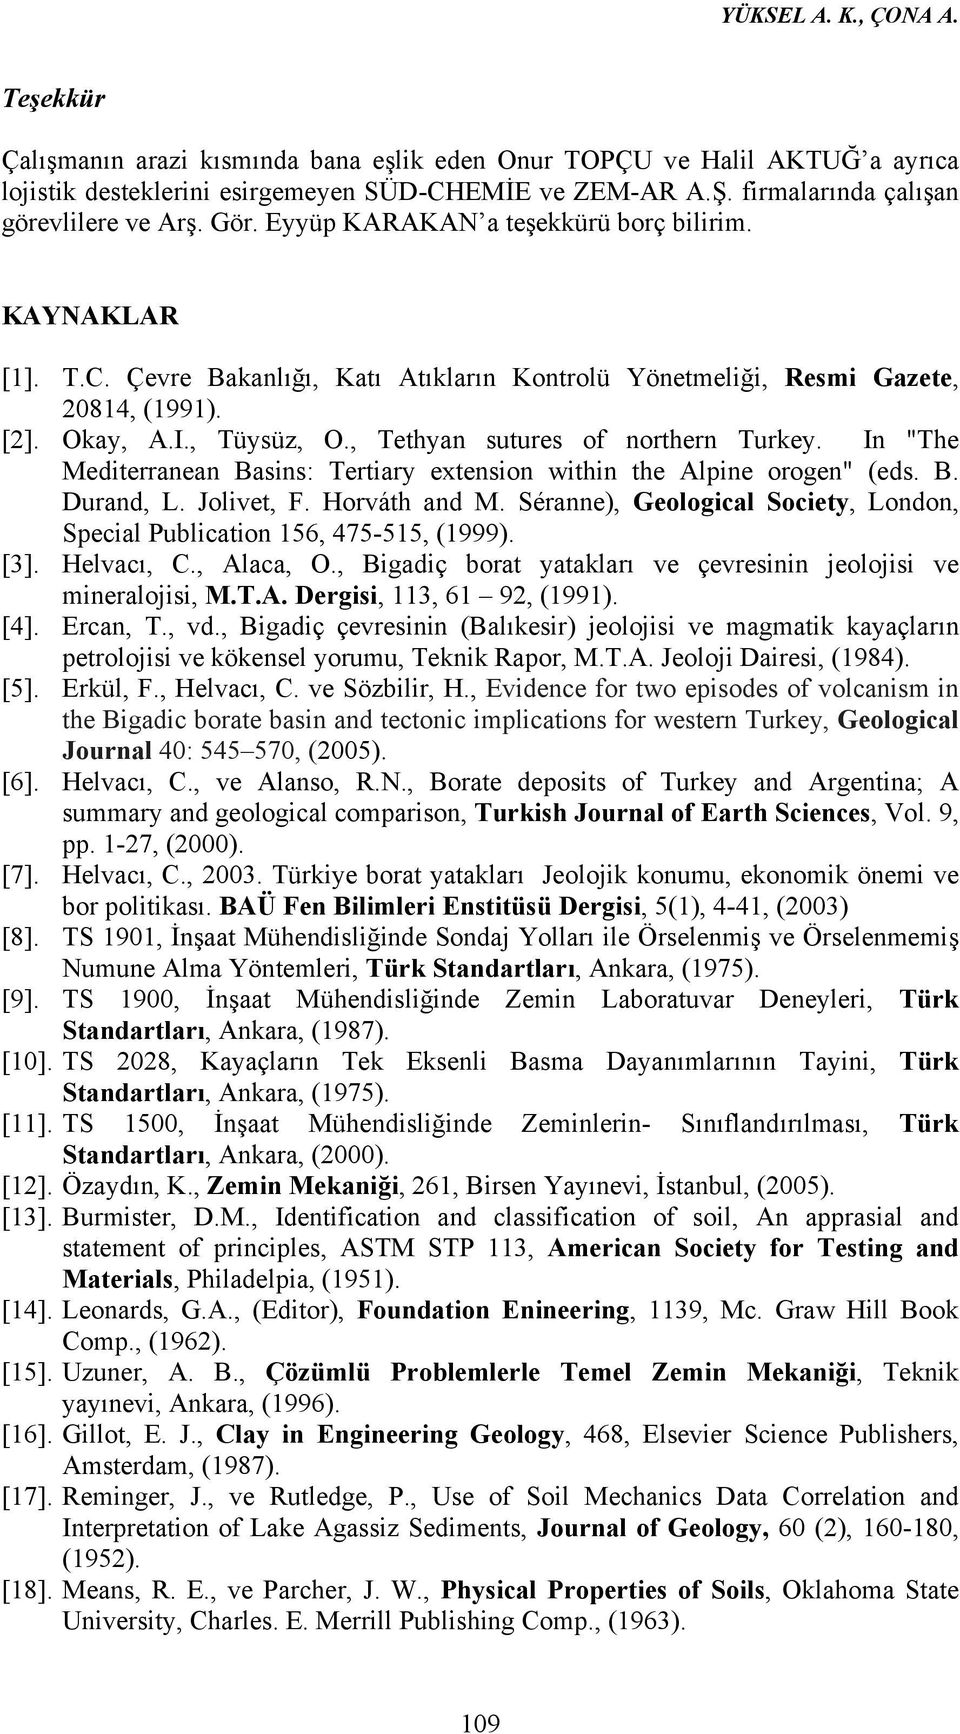 "Okay, A.I., Tüysüz, O., Tethyan sutures of northern Turkey. In ""The Mediterranean Basins: Tertiary extension within the Alpine orogen"" (eds. B. Durand, L. Jolivet, F. Horváth and M."